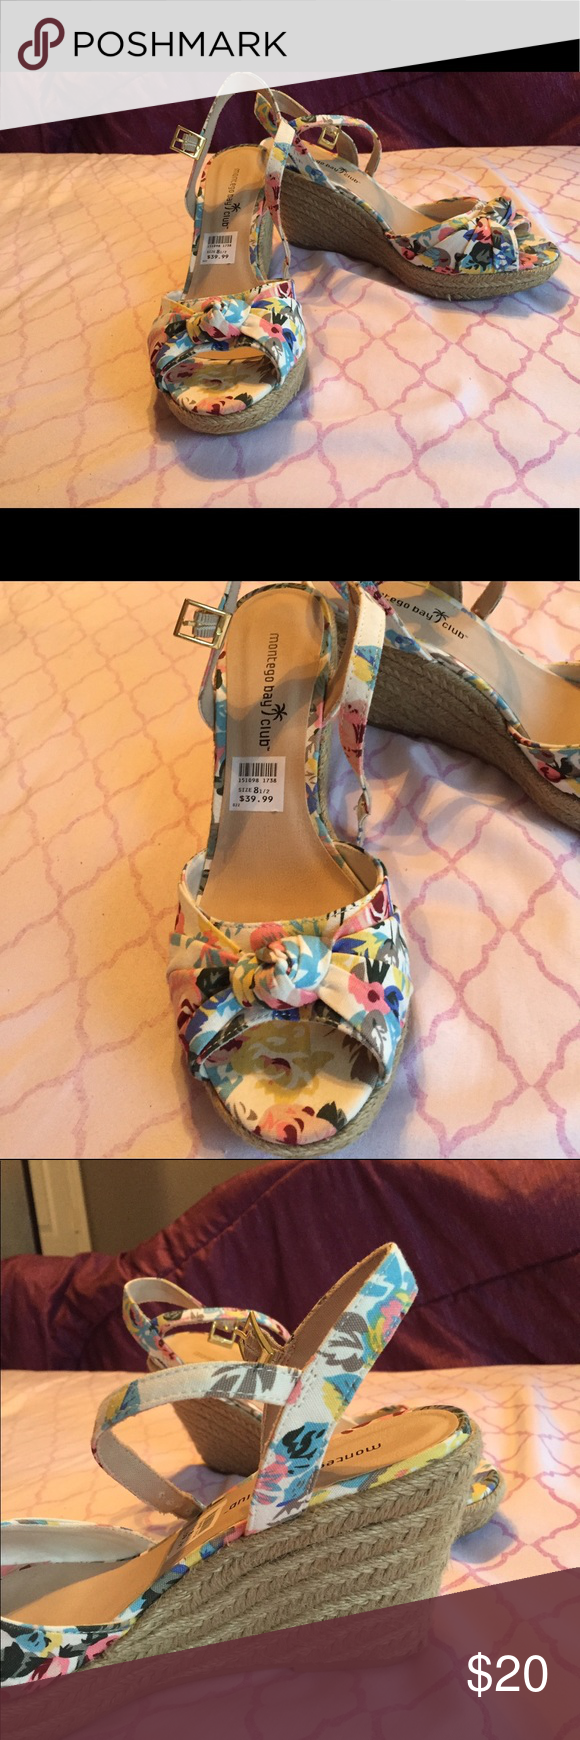 Wedges Montego Bay Club wedges, super cute, barely worn, heel approximately 4 inches Montego Bay Club Shoes Wedges